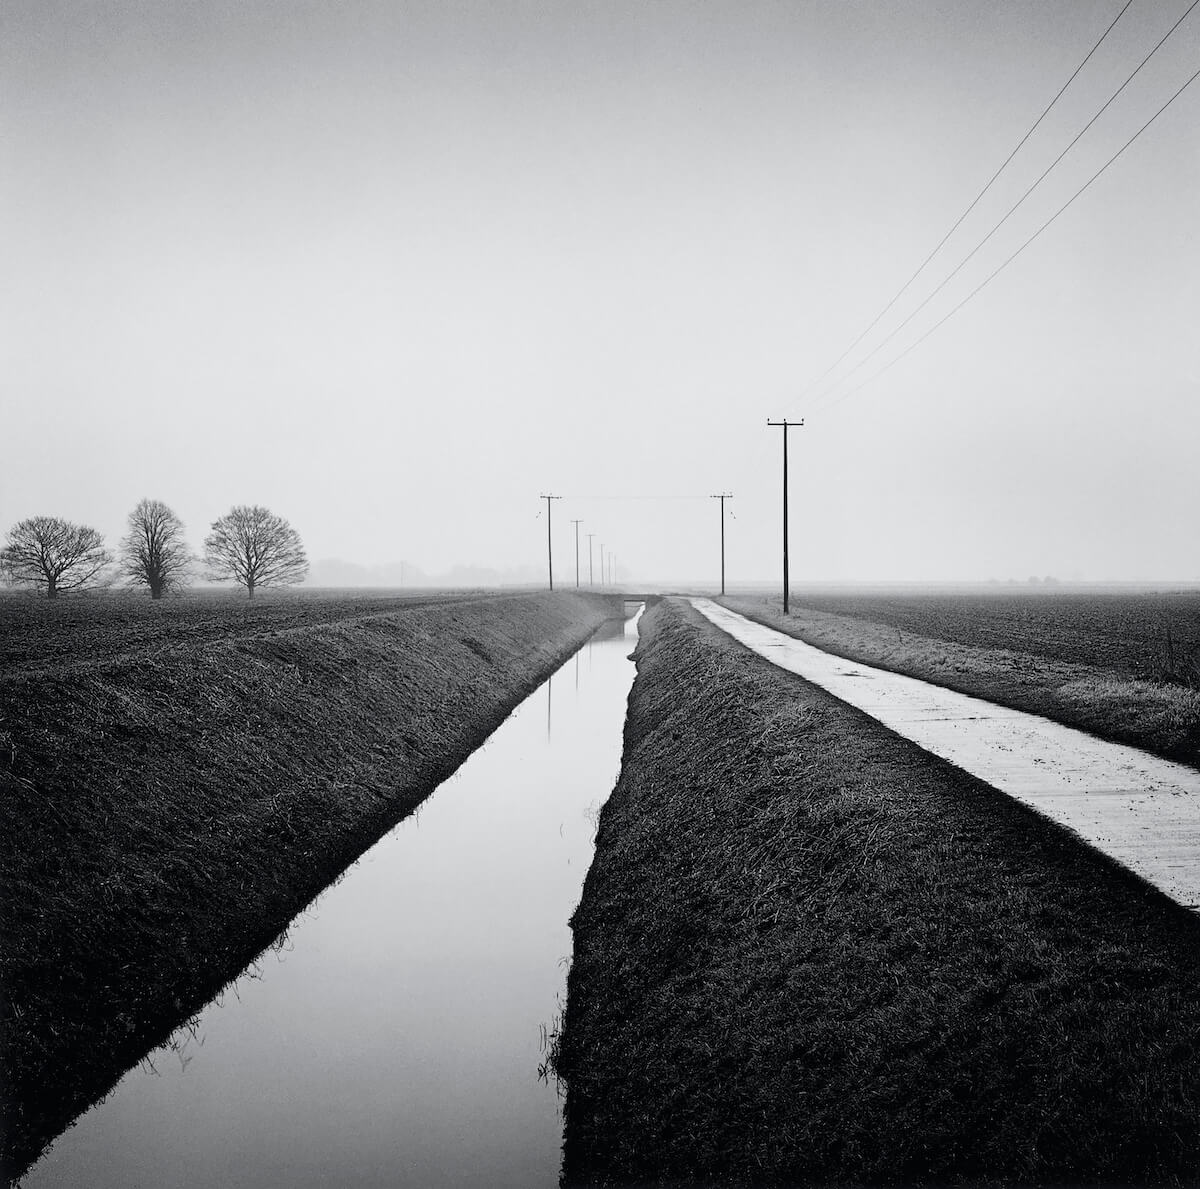 Holbeach St. Matthew (2010) from the series FARMED<p>© Paul Hart</p>